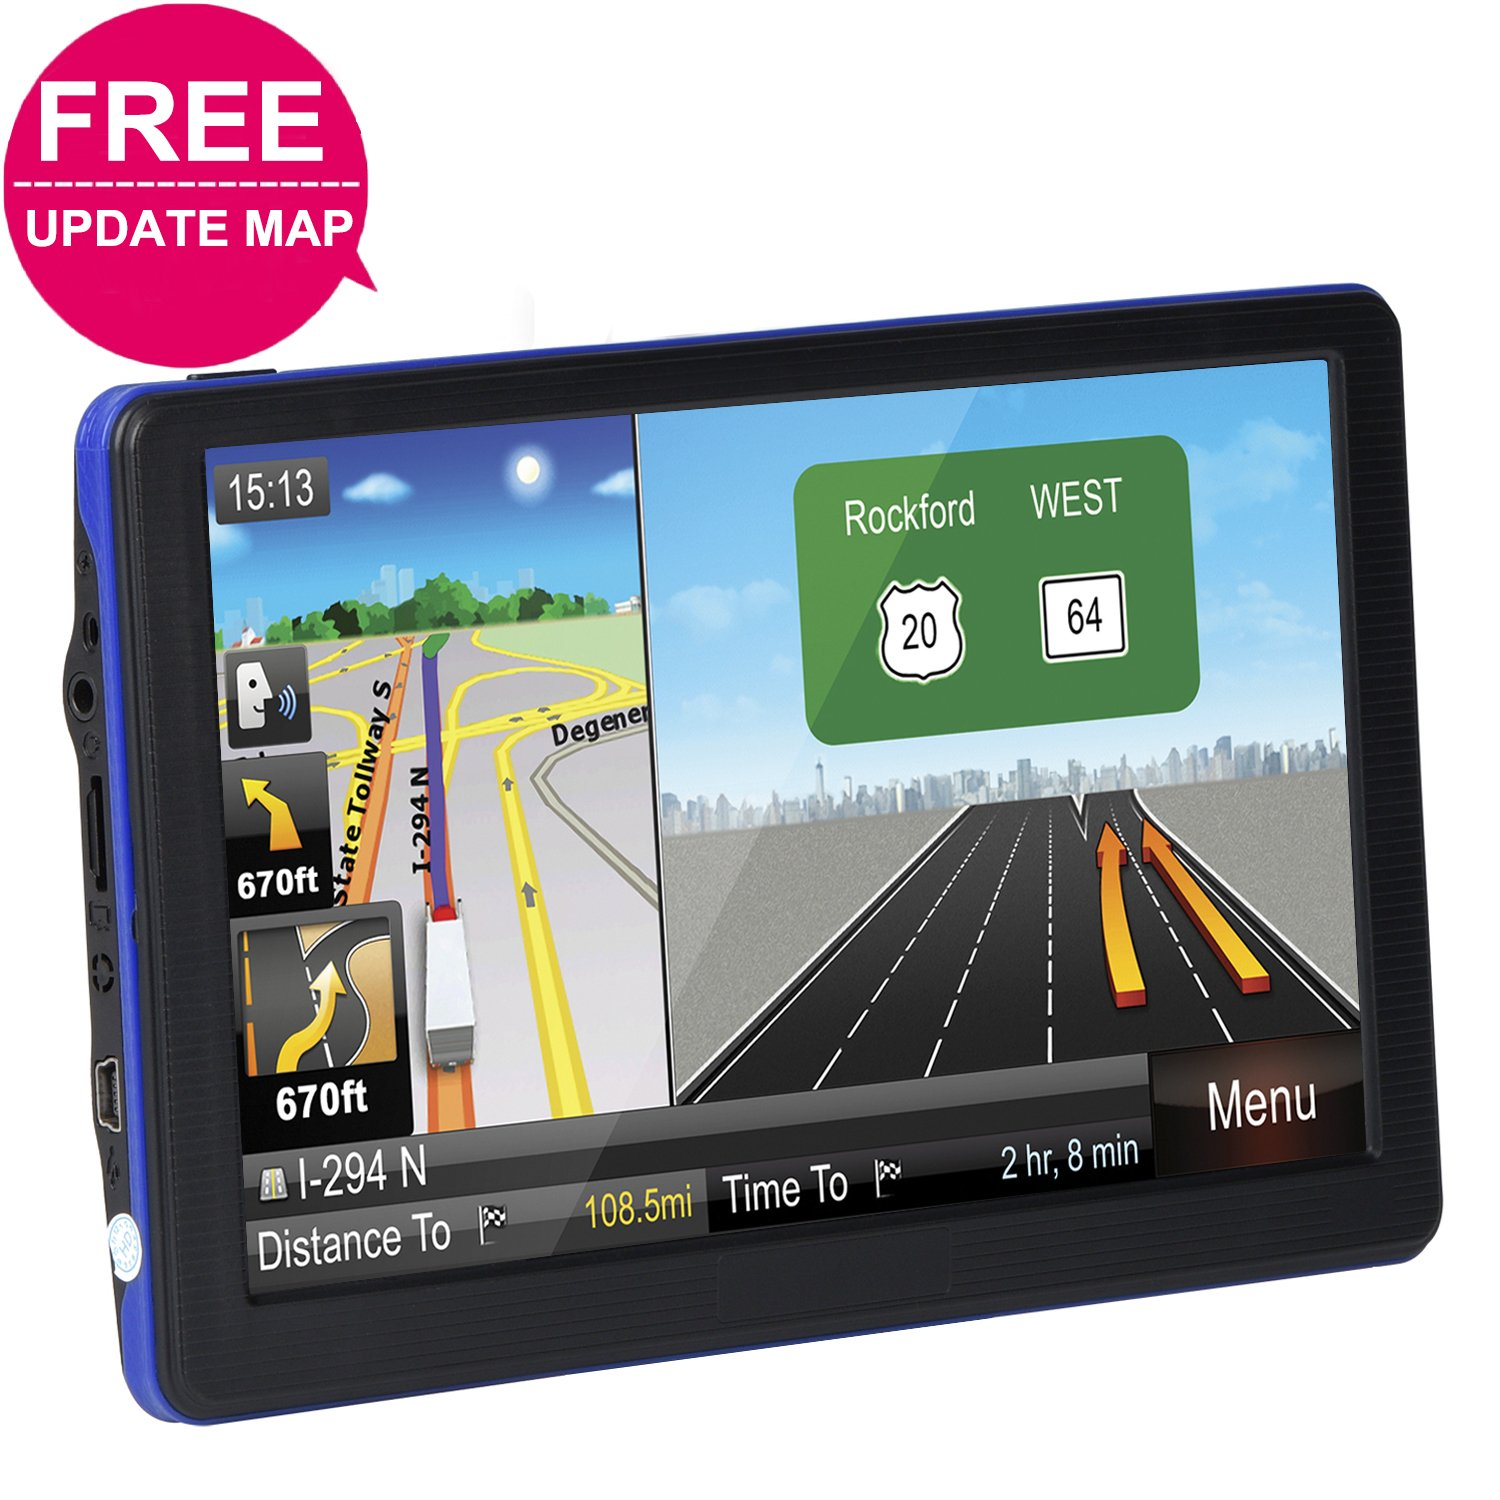 "Car GPS Navigation System, TSWA Free Lifetime Map Update GPS Navigation for car,SAT NAV, 7"" HD GPS Navigator, Vehicle GPS Navigation with USB Cable and Car Charger & Mount"